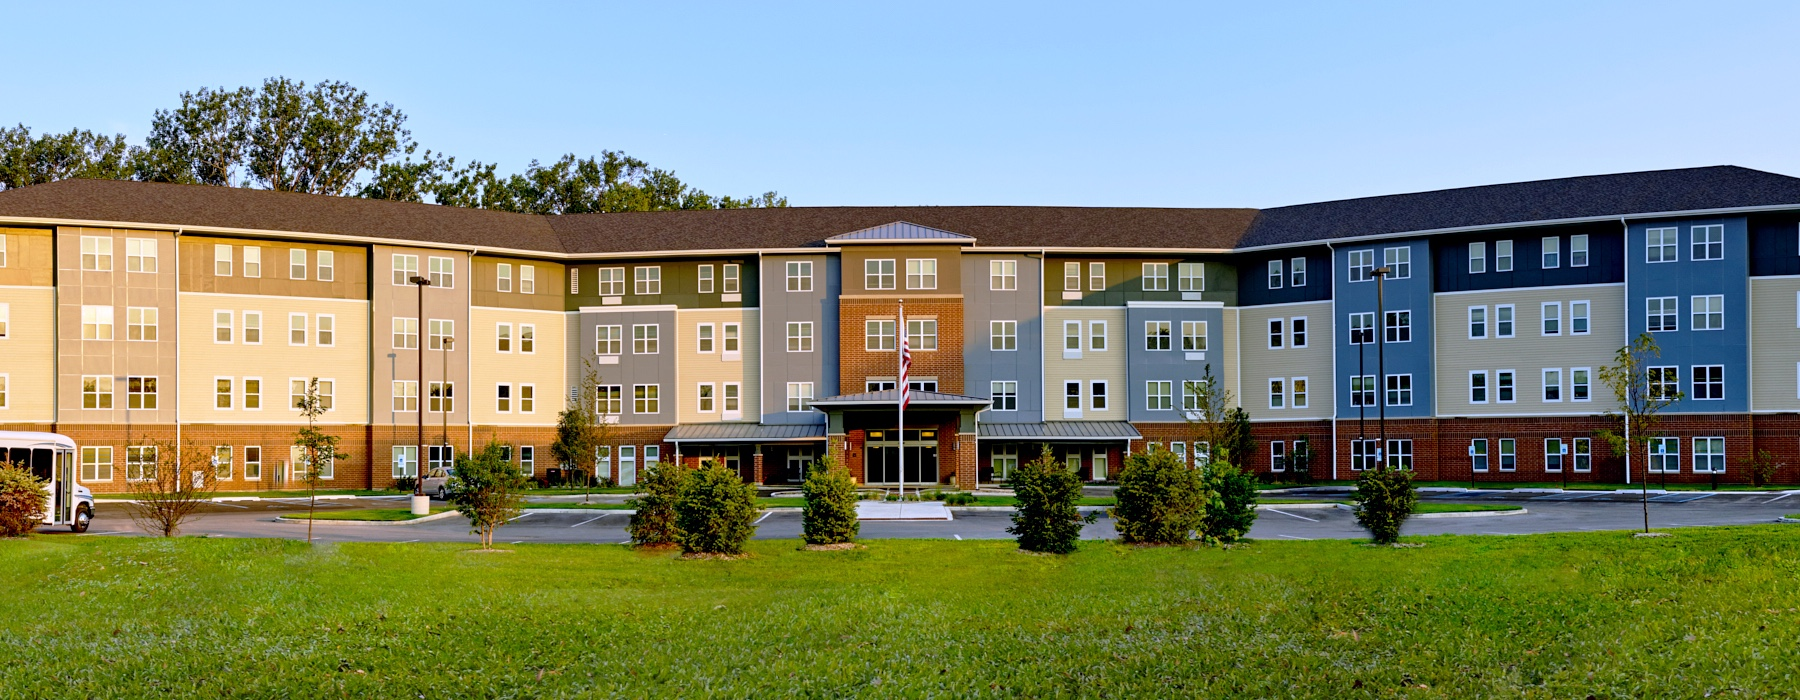 Vermilion Development Affordable Assisted Living Facilities